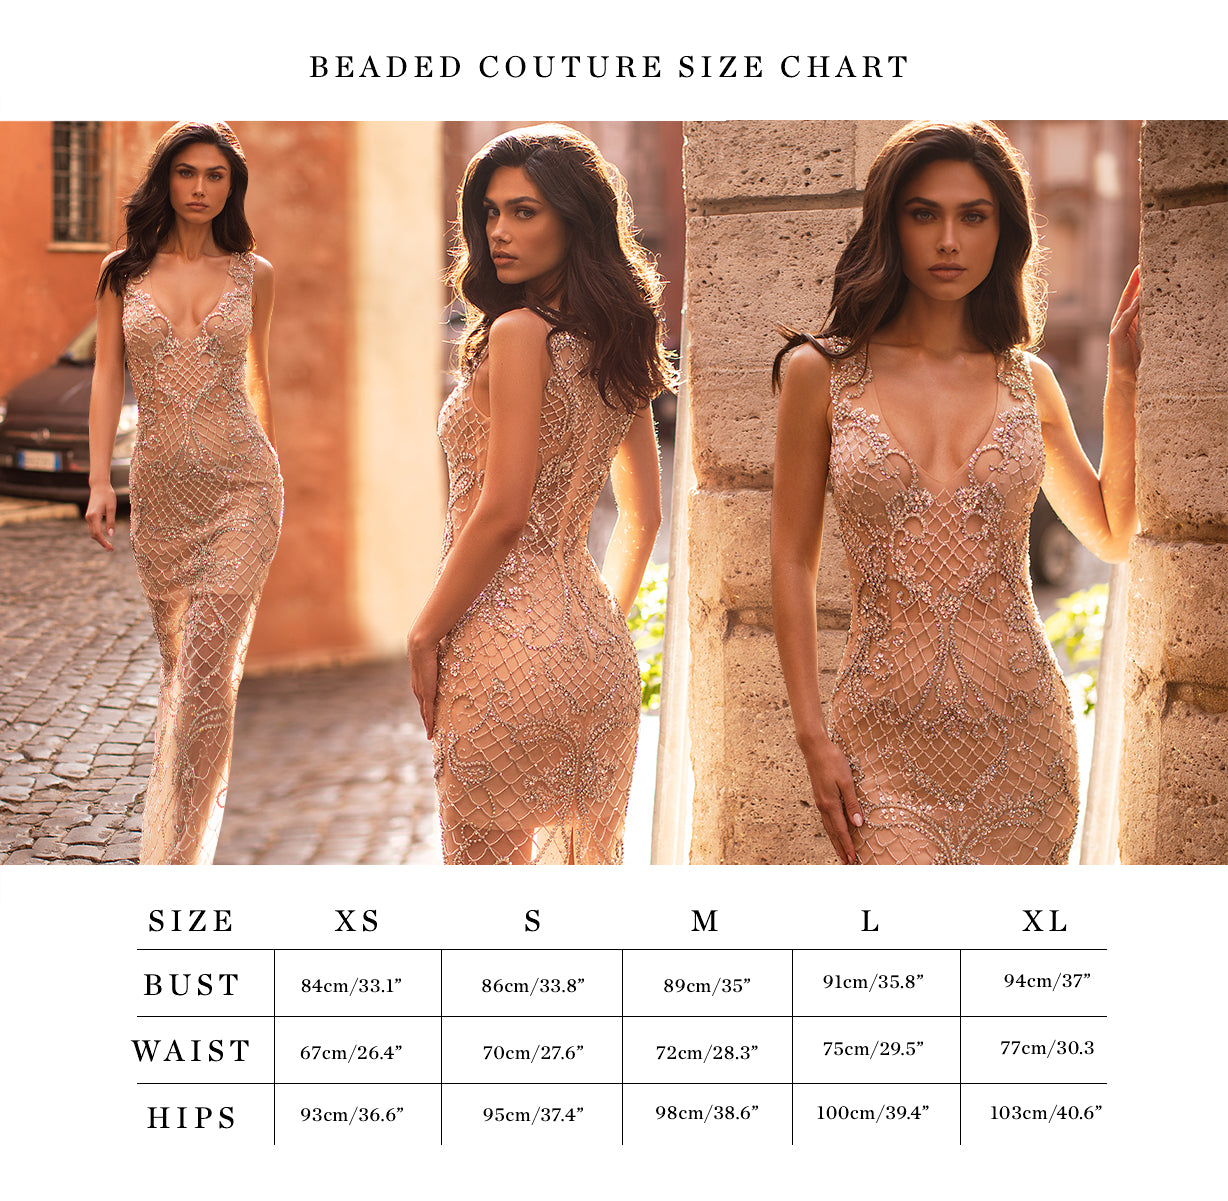 Beaded Couture size chart